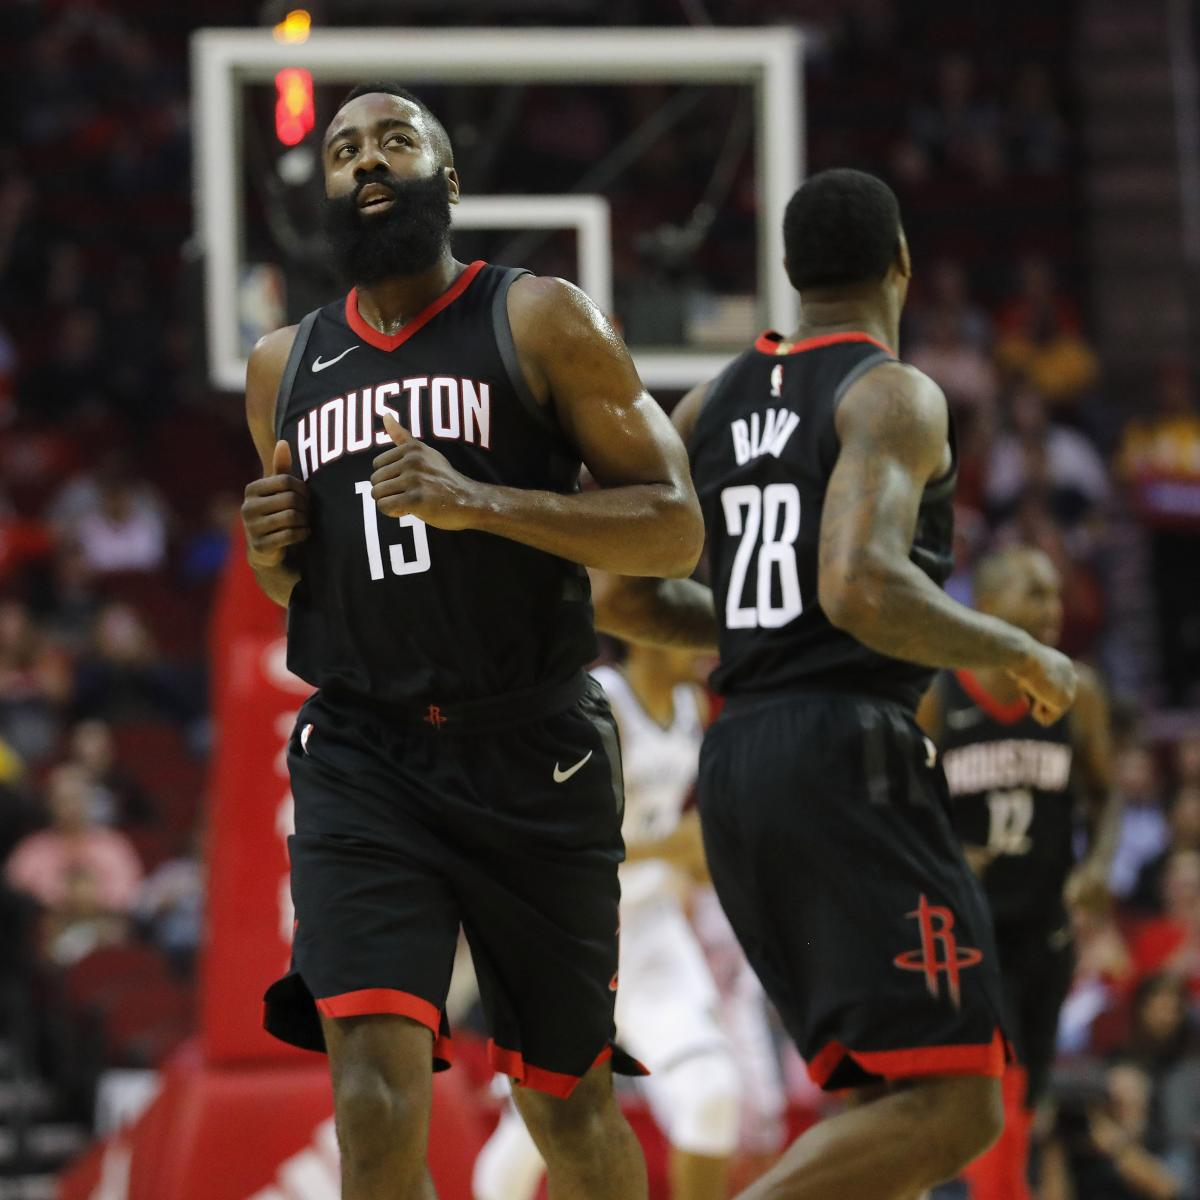 James Harden Nba Records: James Harden Sets Rockets Franchise Scoring Record With